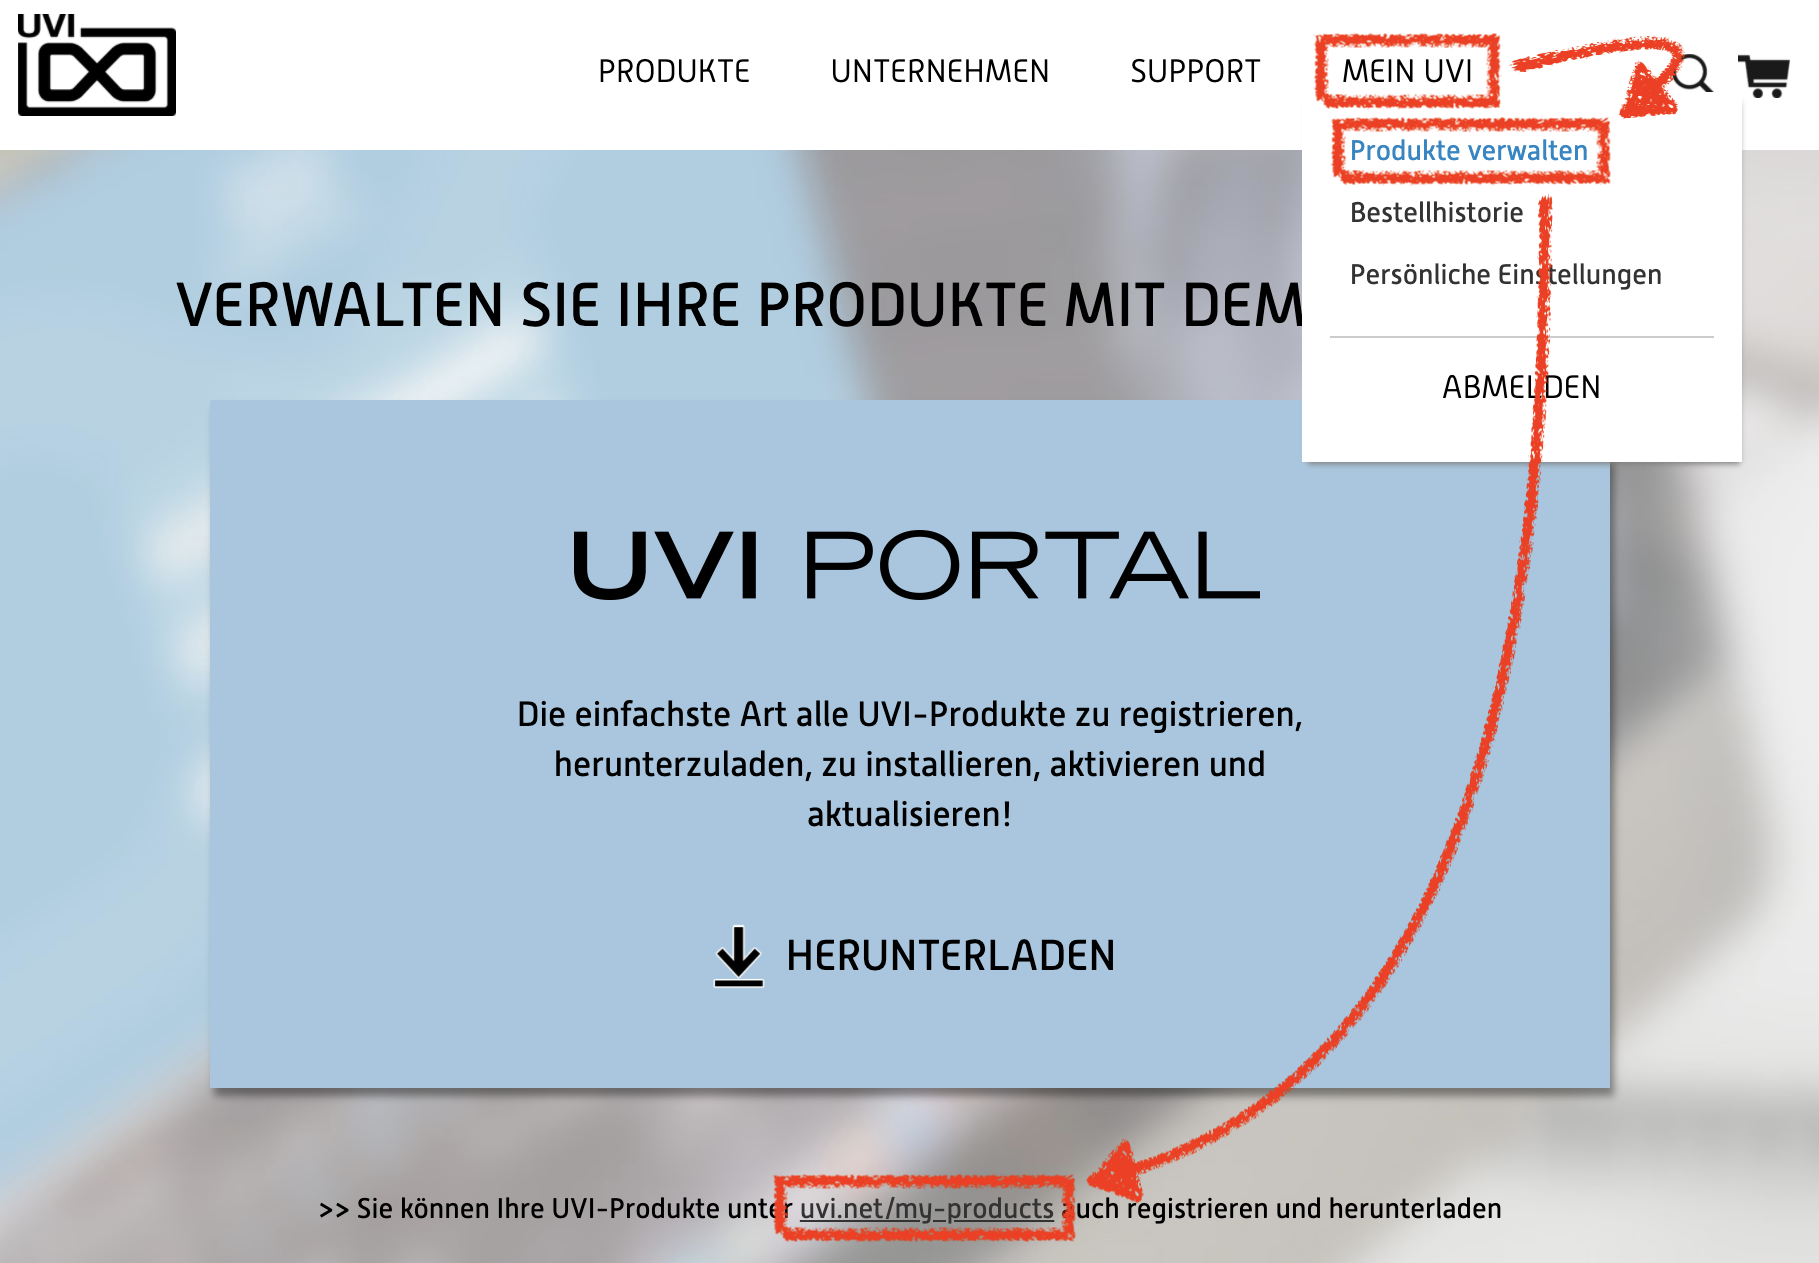 uvi.net_MyProducts_New_GER.png